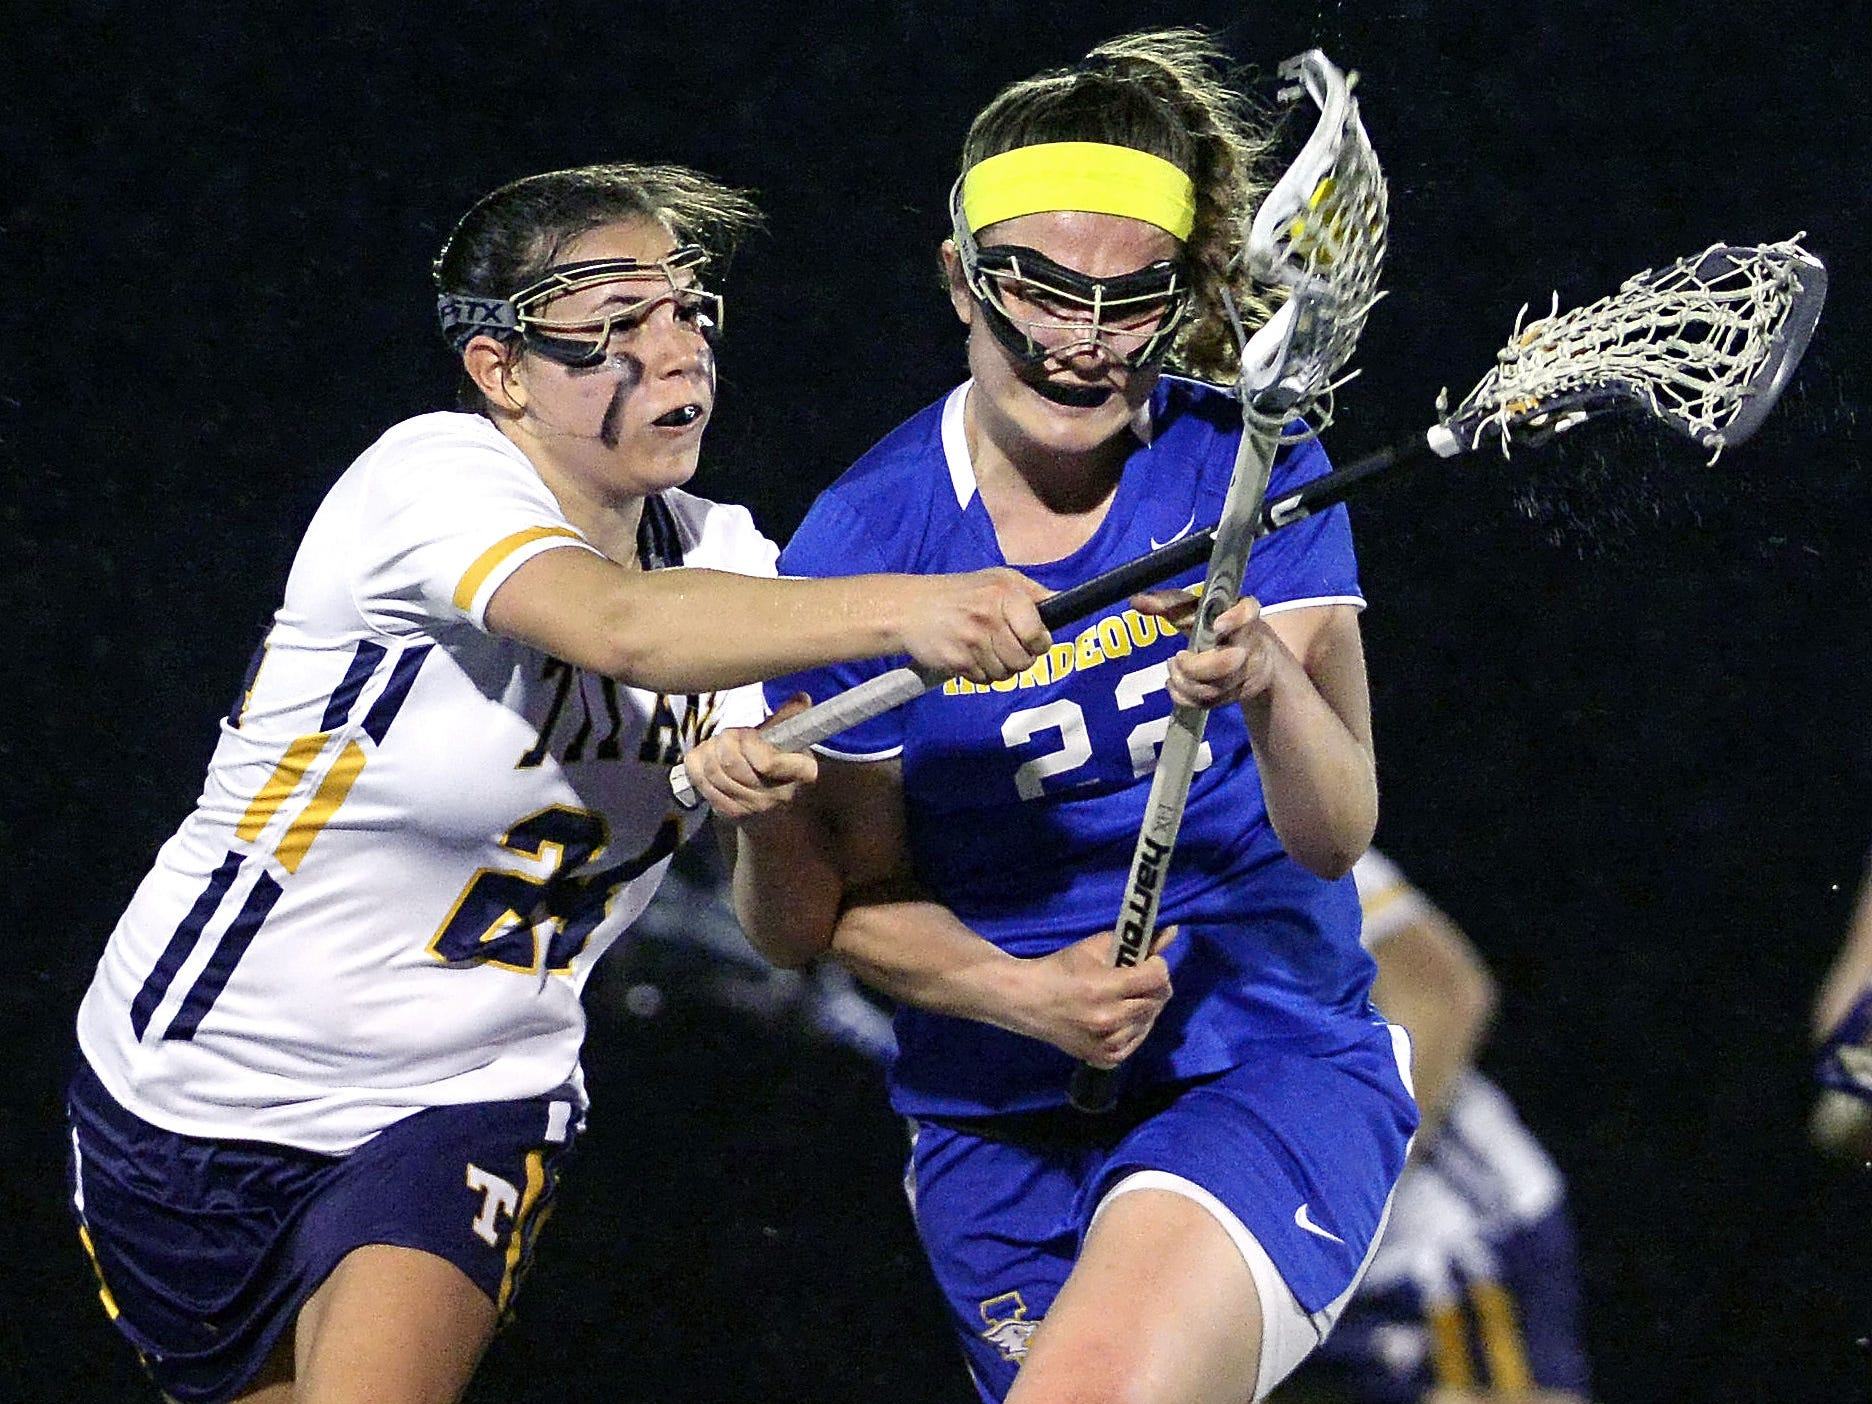 Webster Thomas' Emily Resnick, left, defends against Irondequoit's Katie Miller during a regular season game played at Webster Thomas High School on Monday, April 13, 2015.